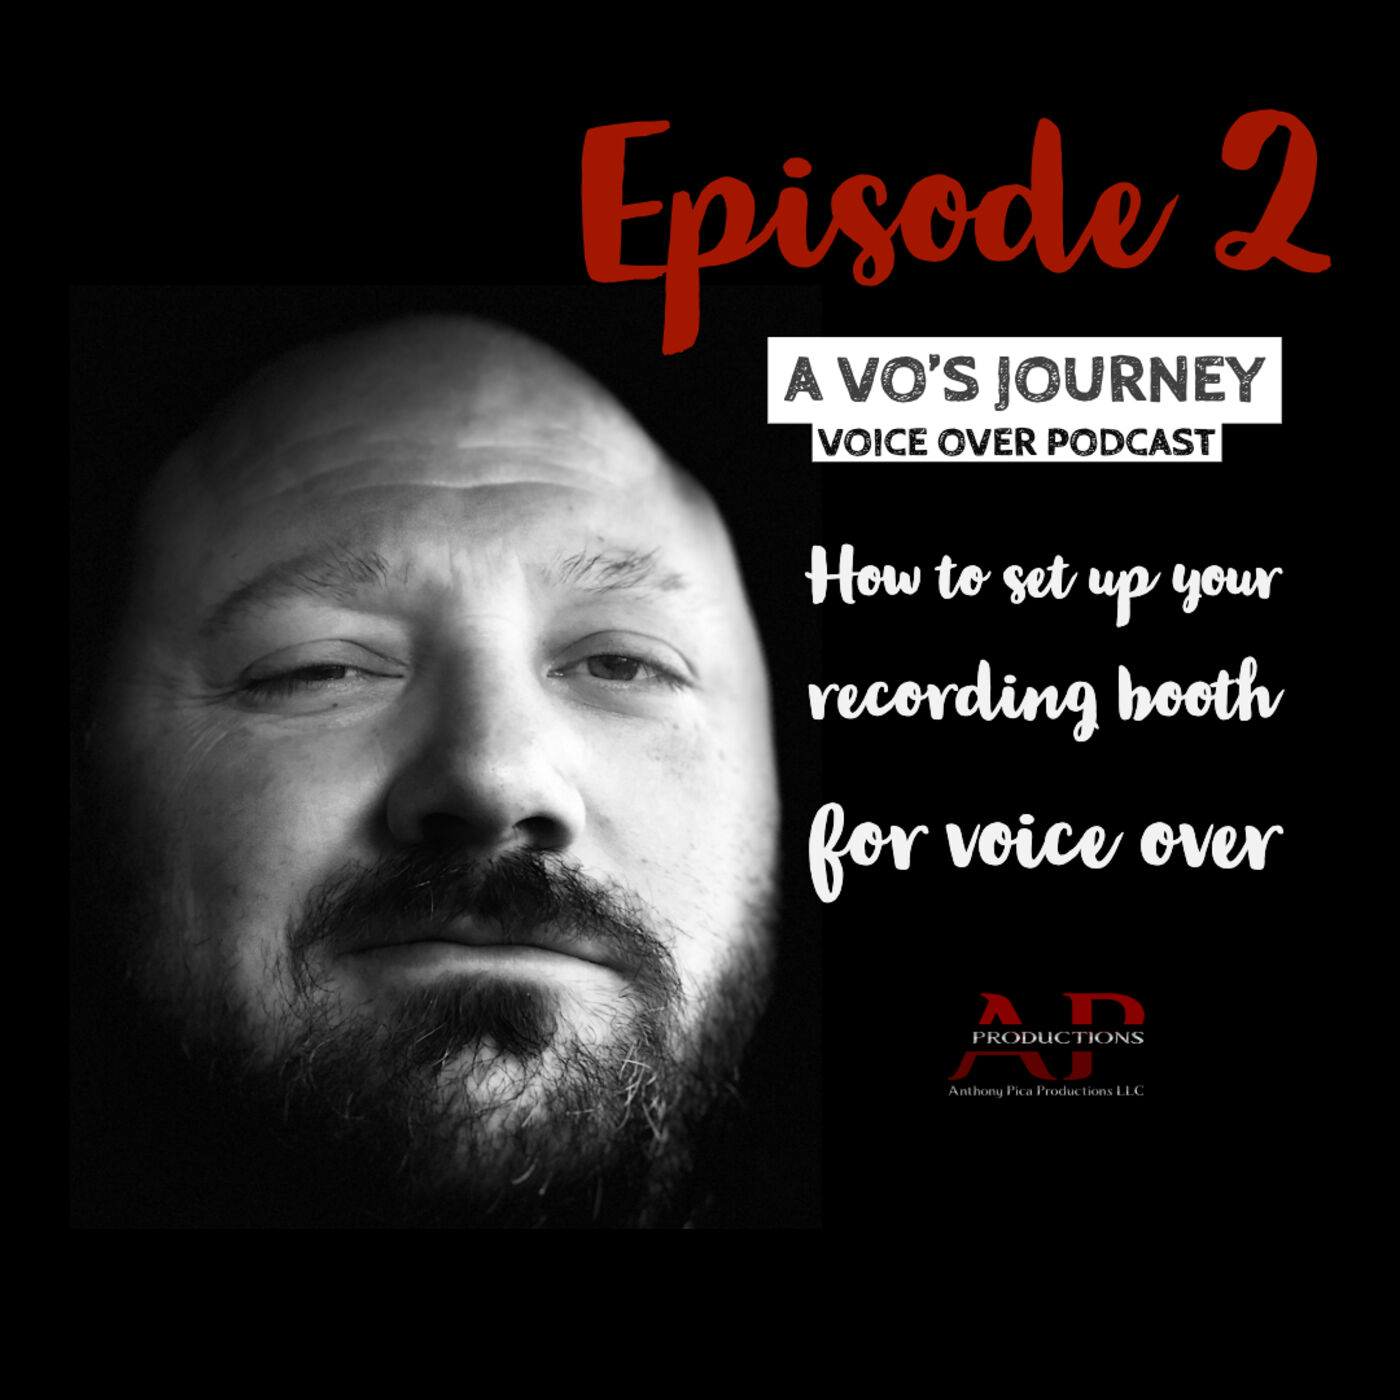 Ep. 2: How to set up your recording booth for voice over